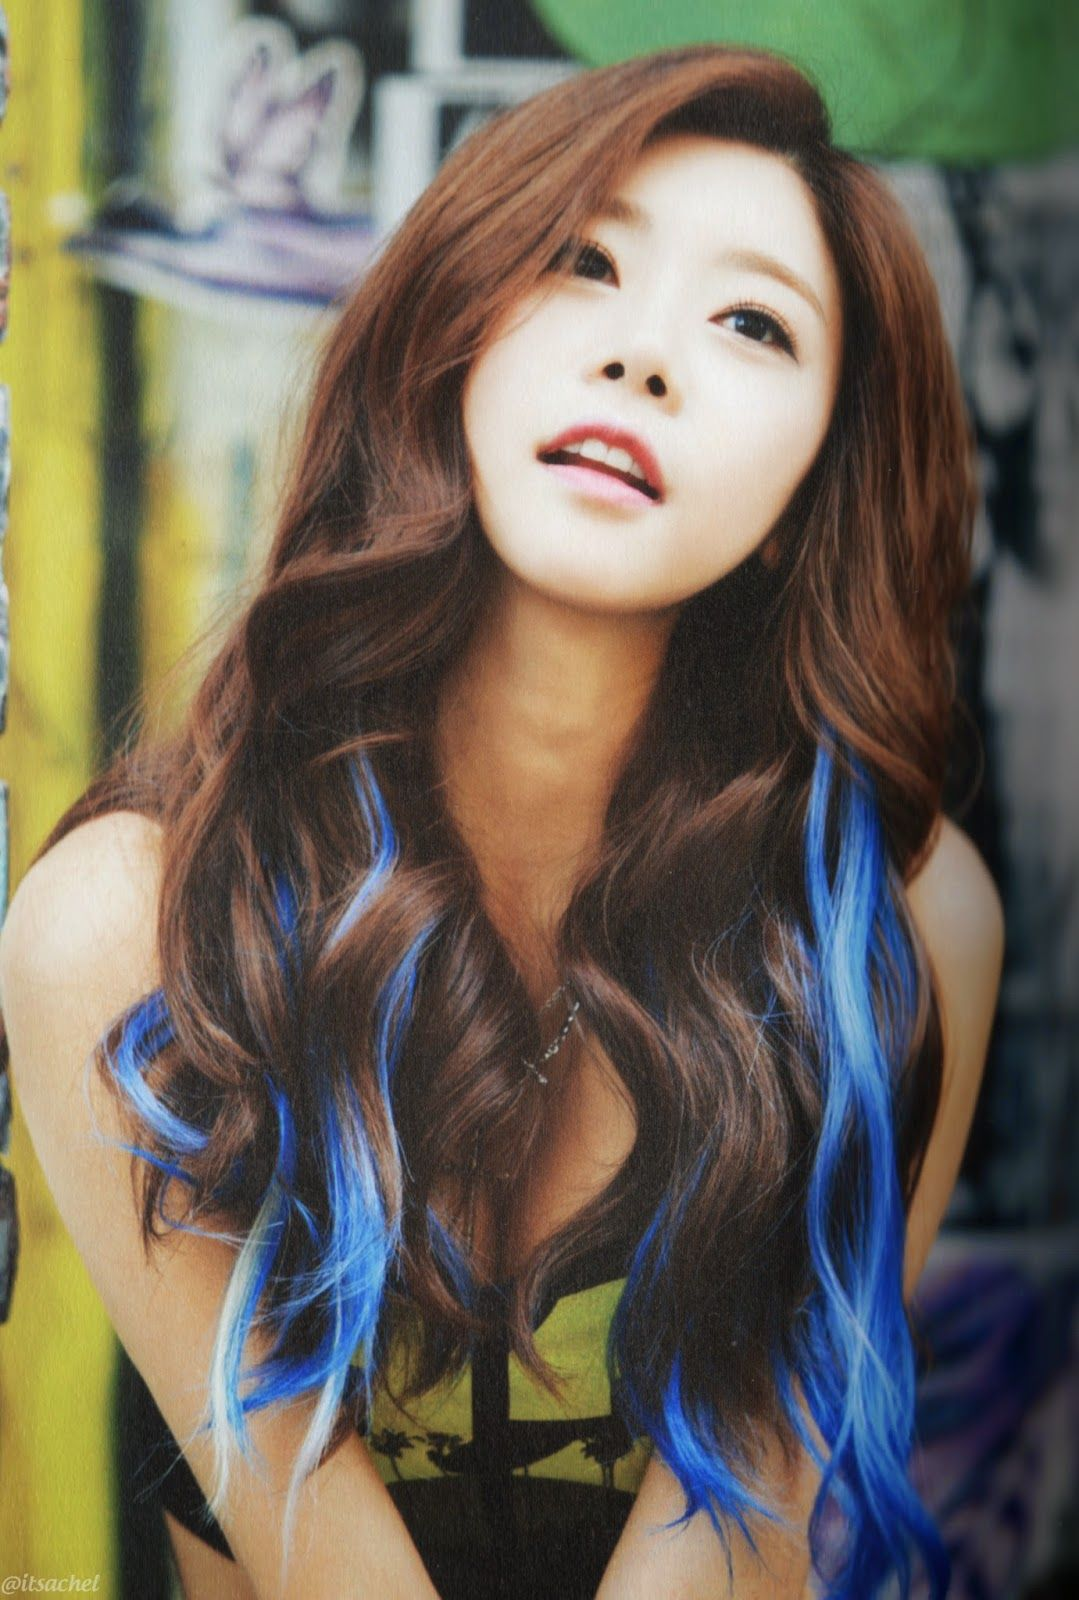 Pin By Kazue Okada On Sojin Kpop Hair Color Hair Color